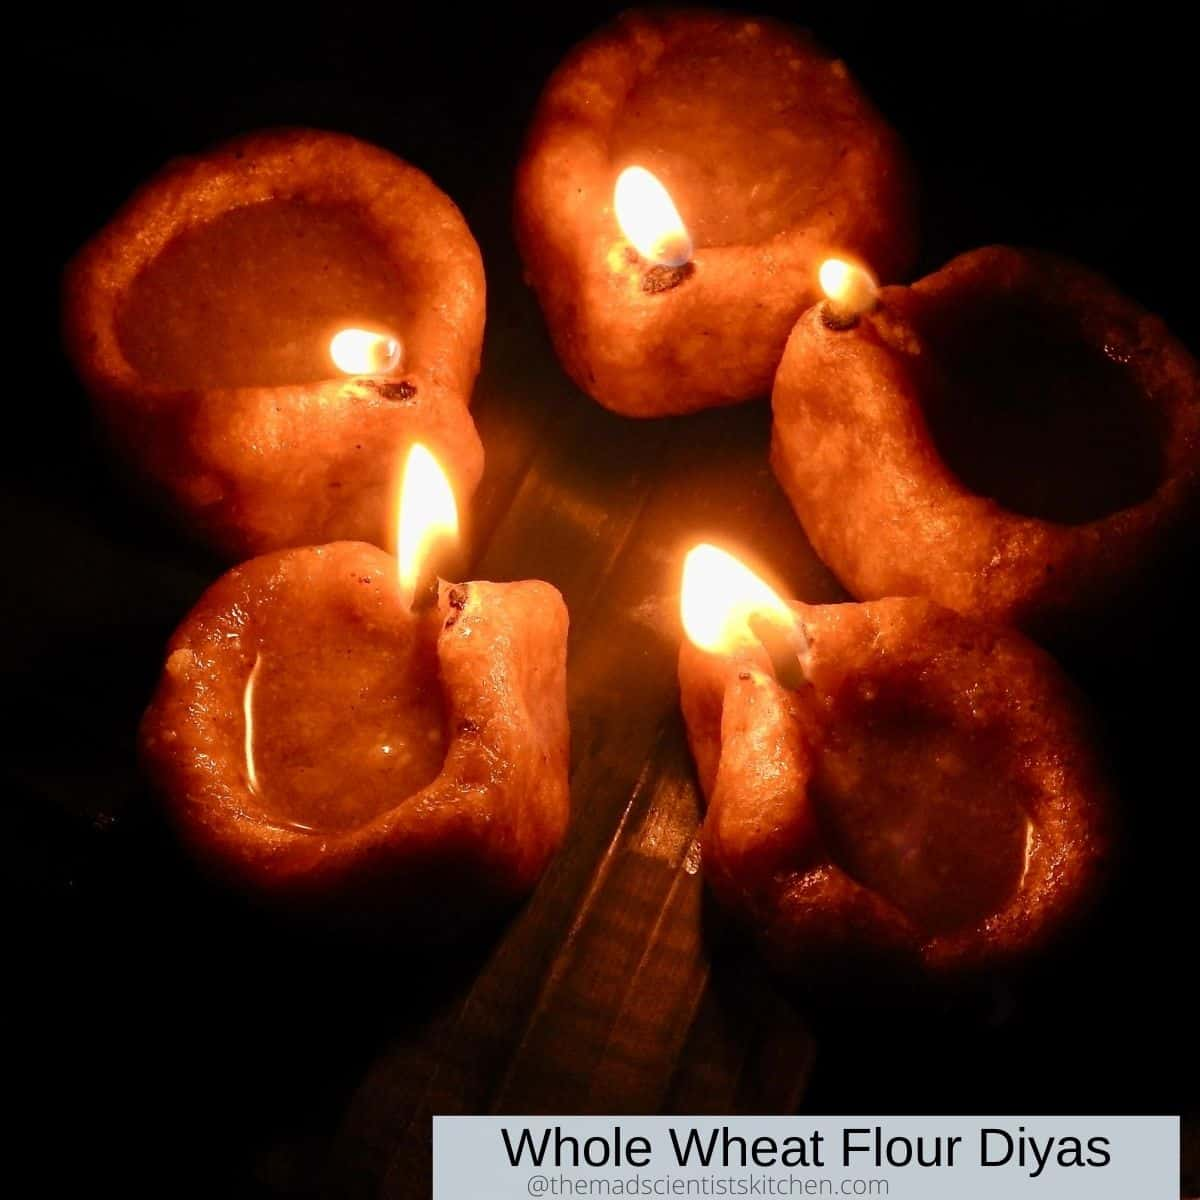 Whole wheat Flour lamps for worship